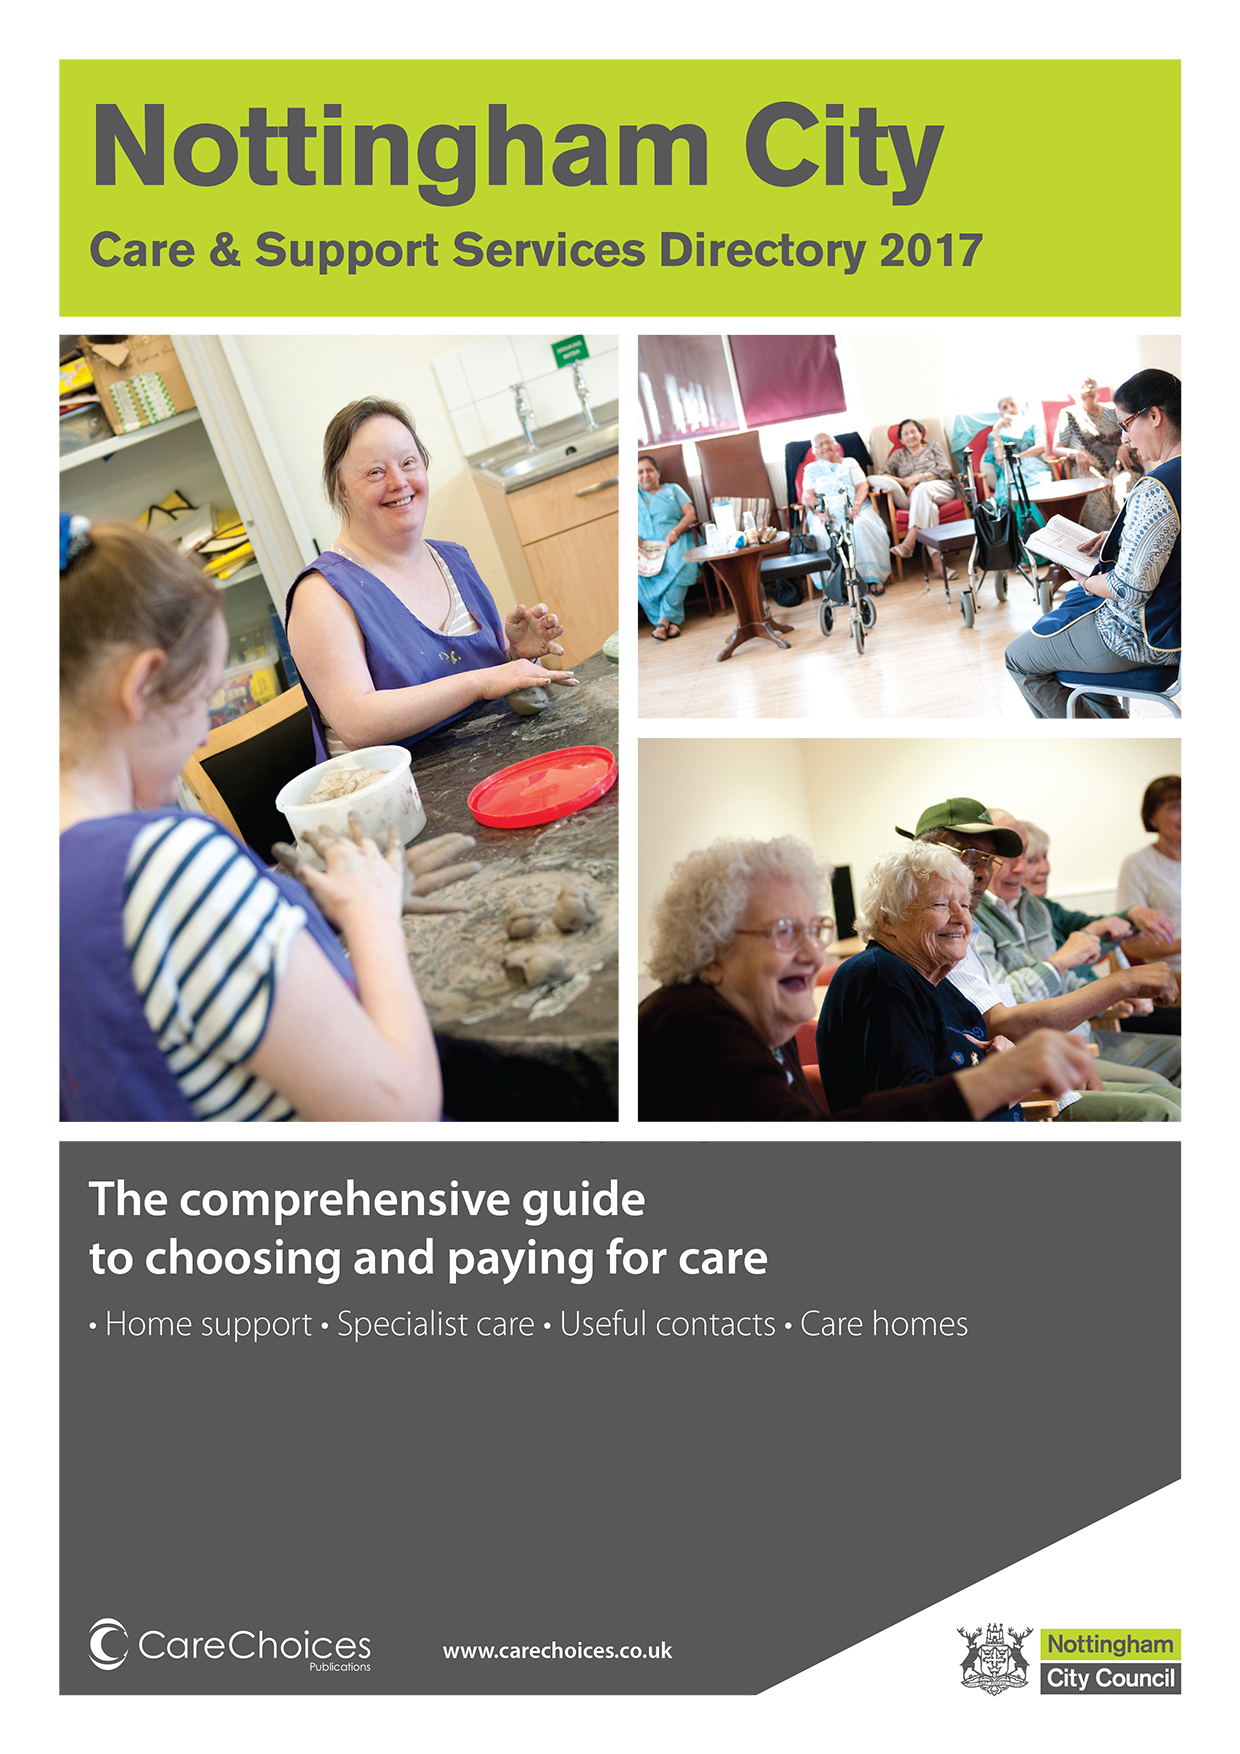 Nottingham City Care Services Directory - Care Choices